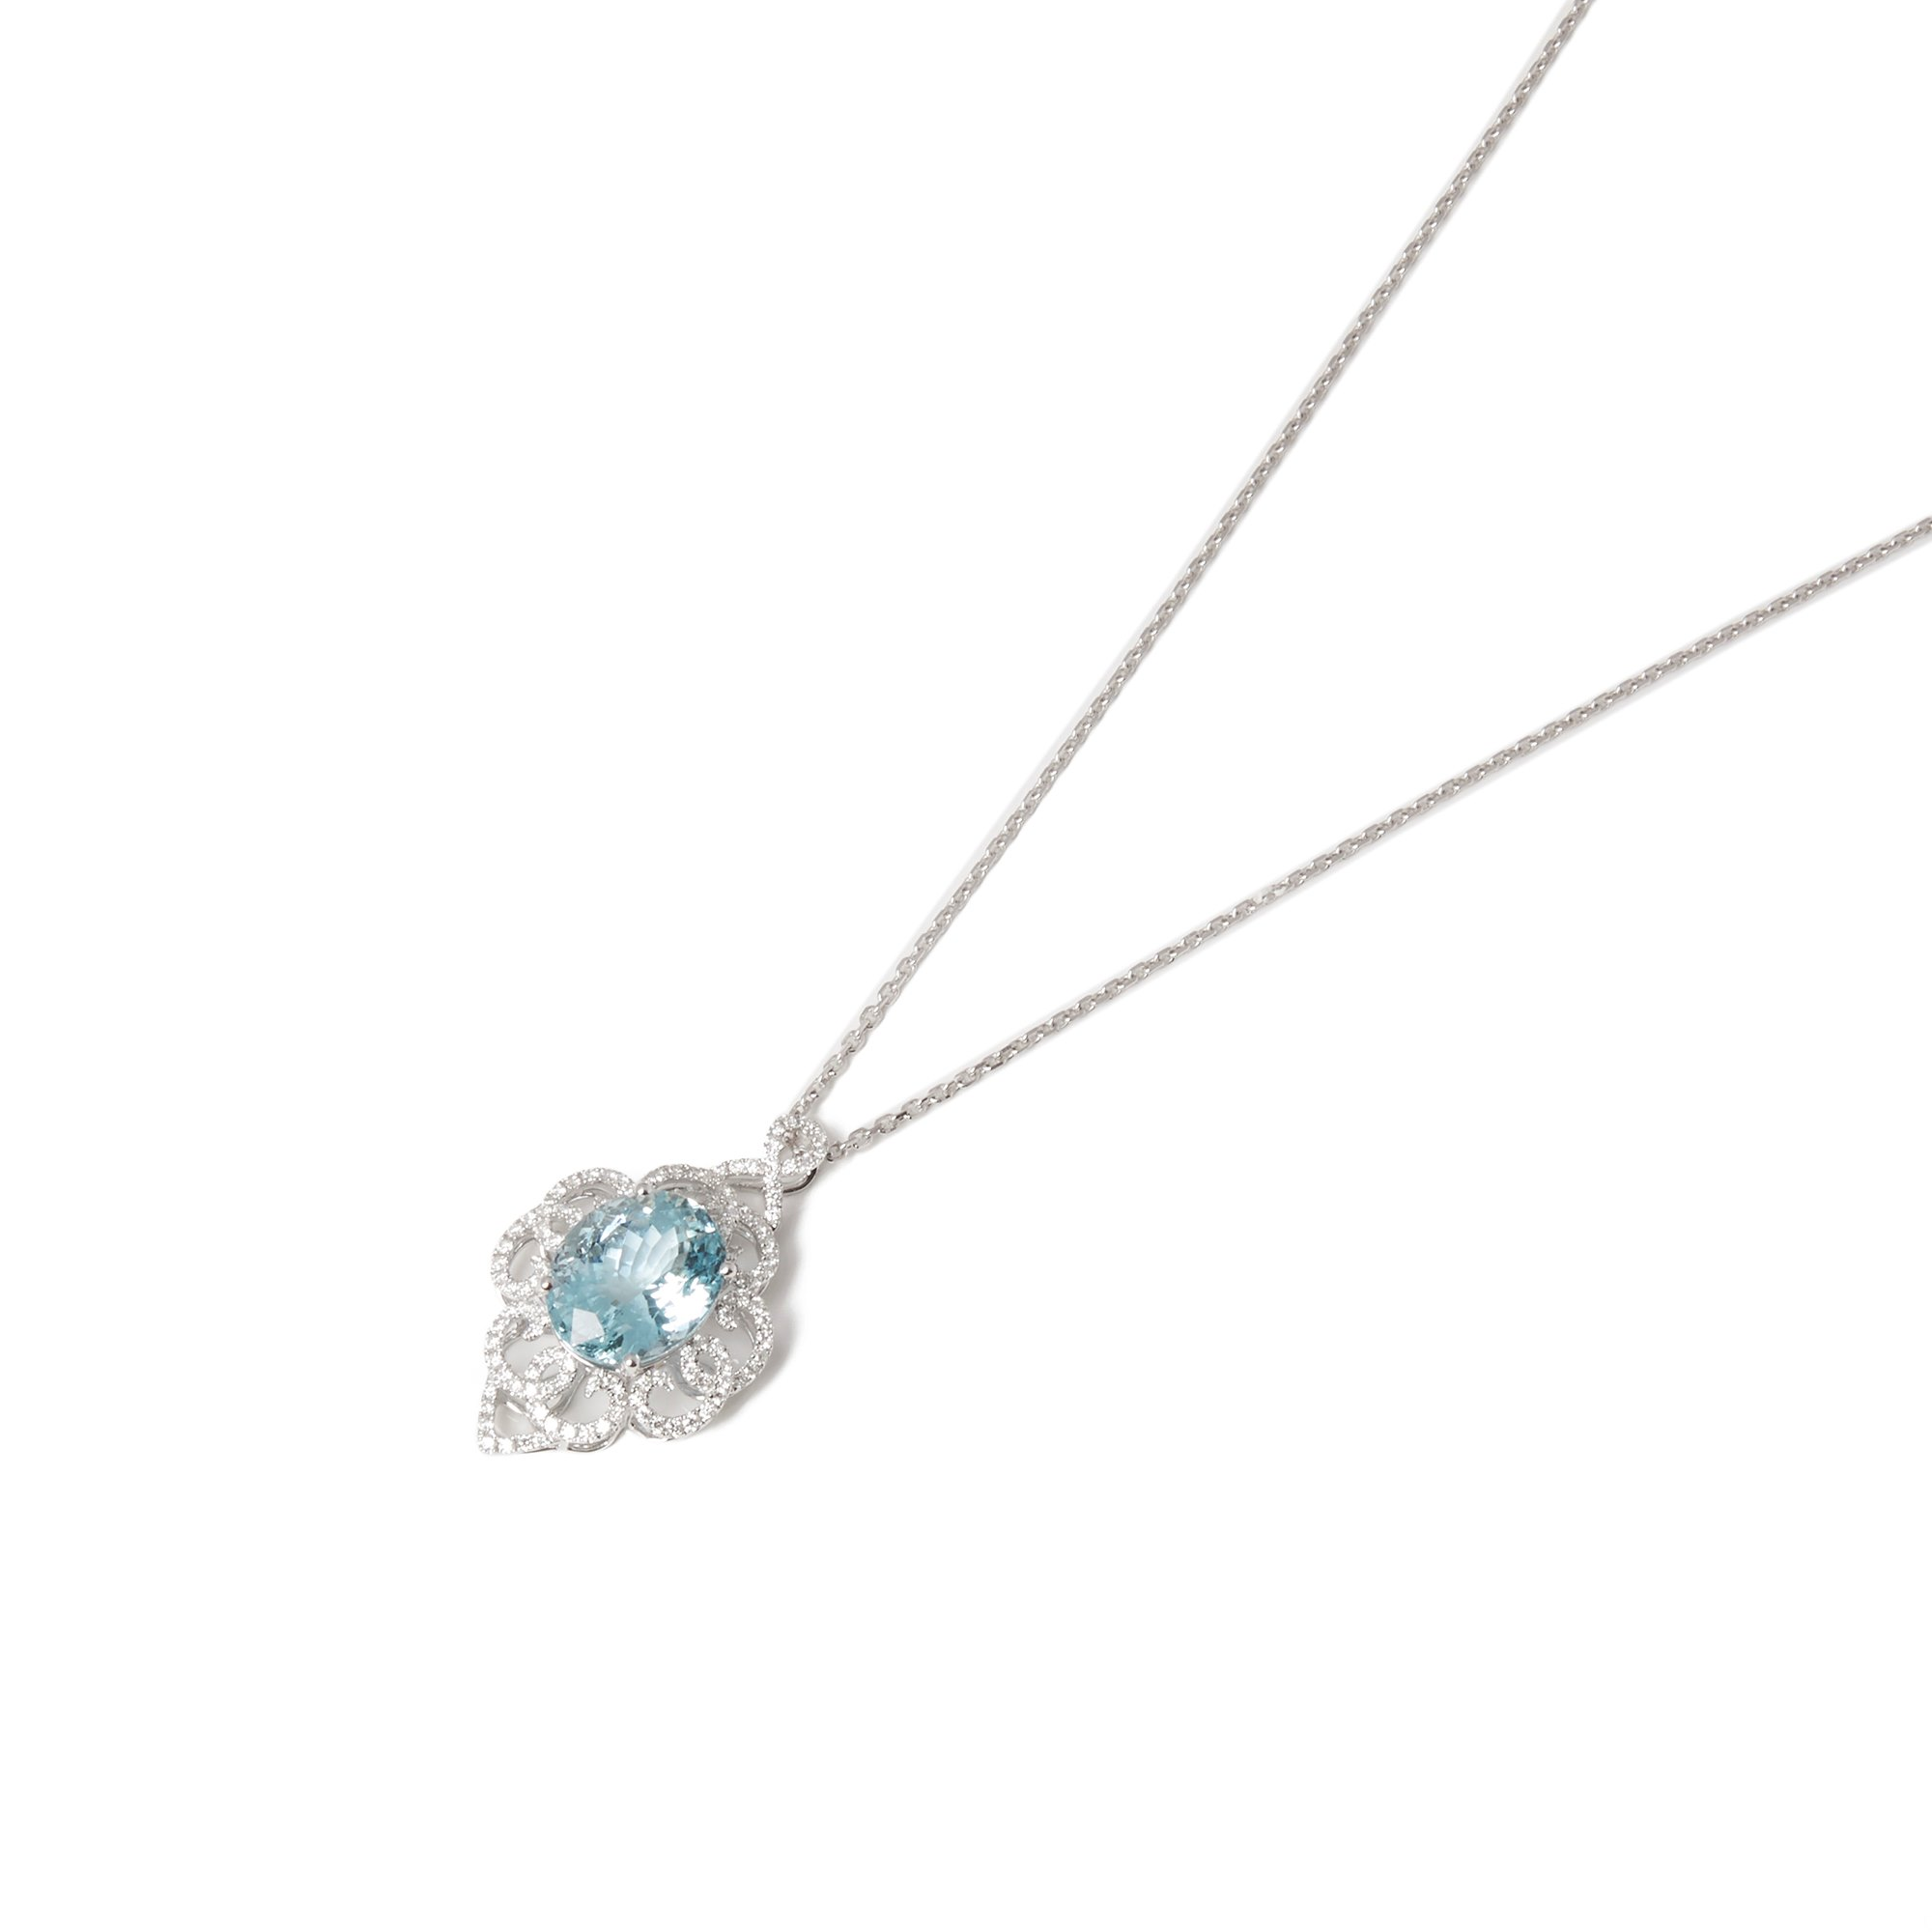 David Jerome 18k White Gold Aquamarine and Diamond Pendant